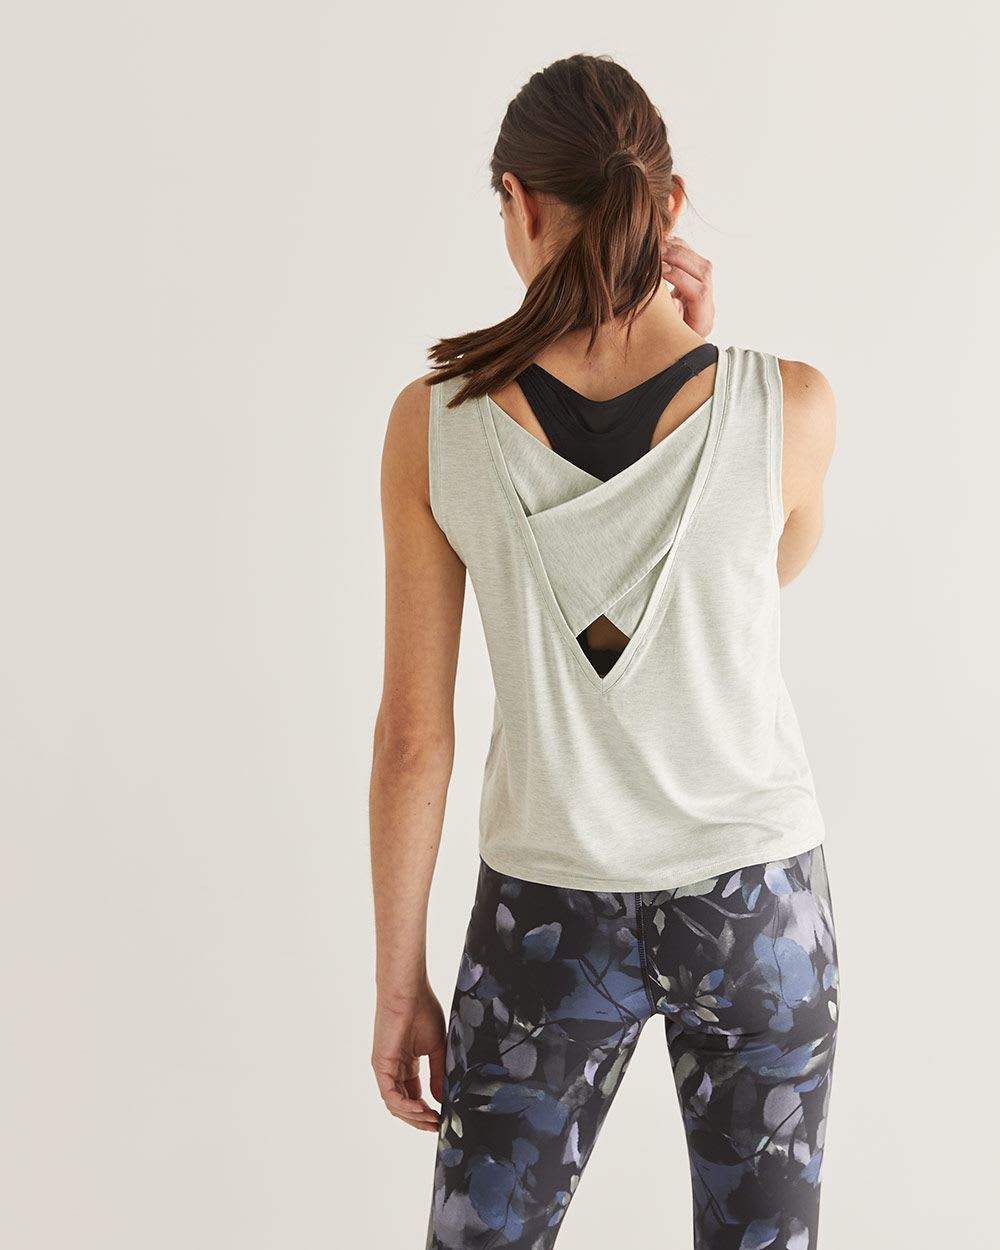 Hyba Crisscross Cropped Tank Top